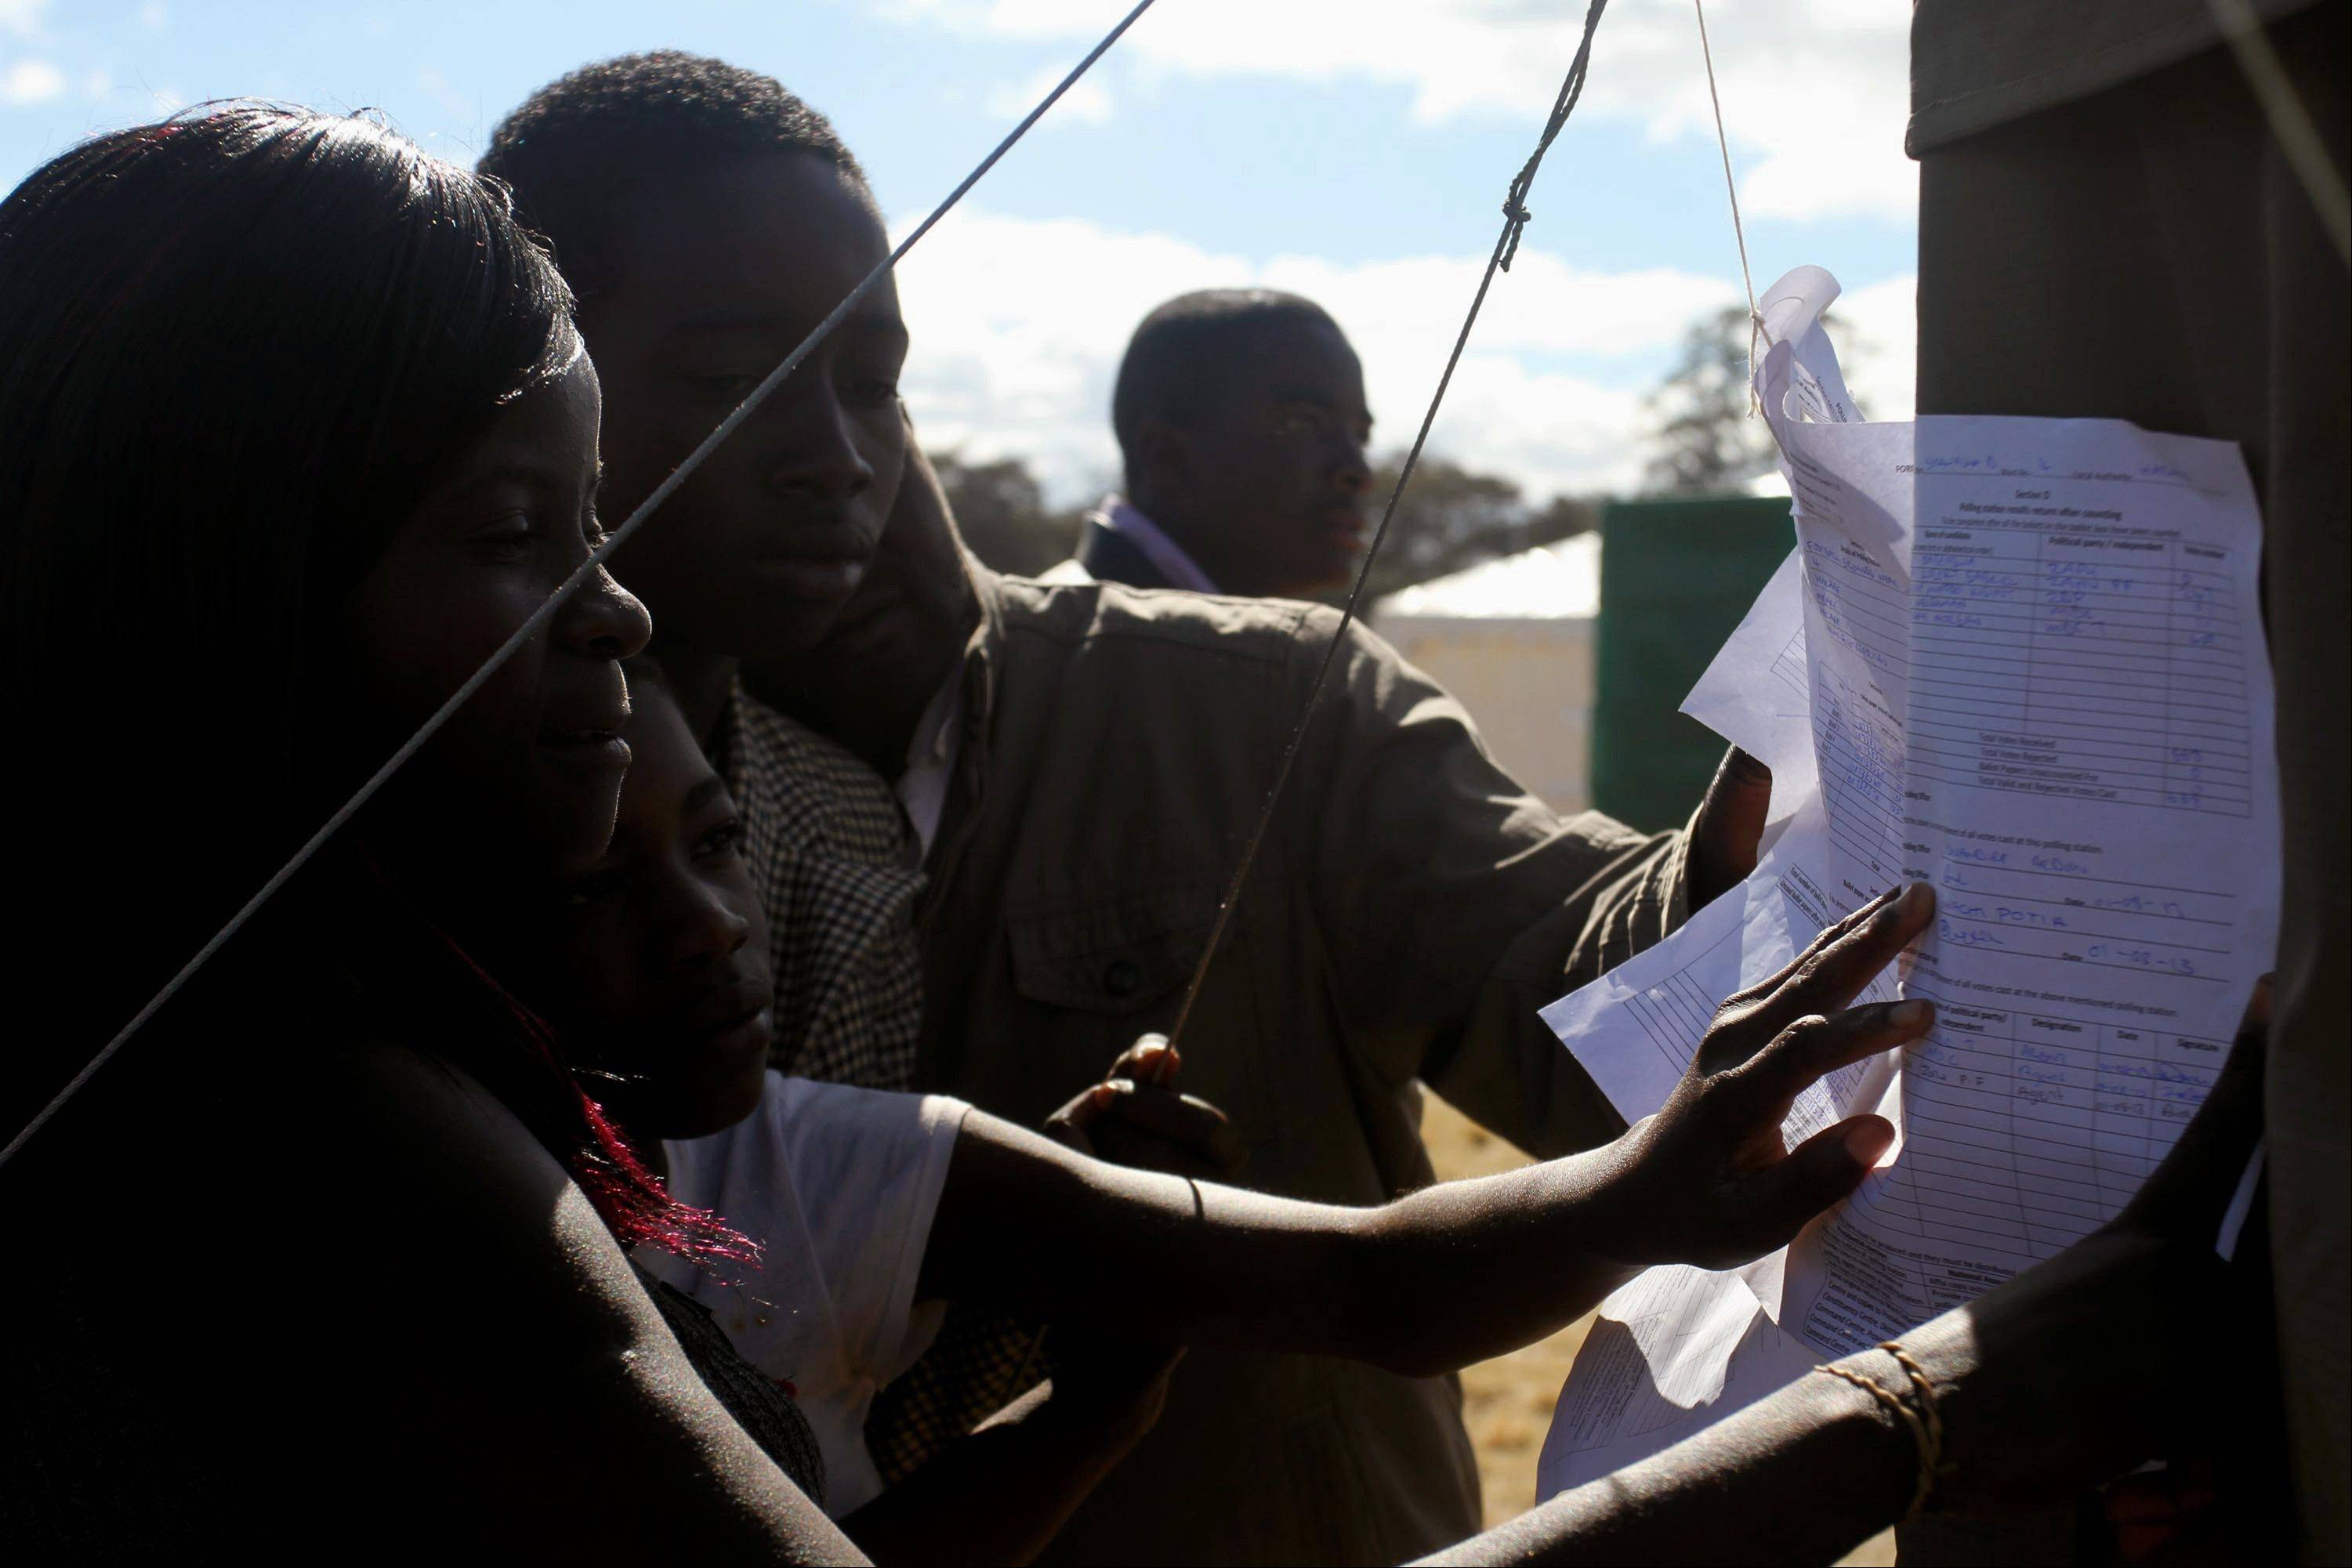 Voters look at posted results outside a polling station in Harare Thursday, Aug. 1, 2013 President Robert Mugabe's ZANU PF party said Thursday, that it has withdrawn an unauthorized message on its Twitter feed claiming a resounding victory in the country's national elections.